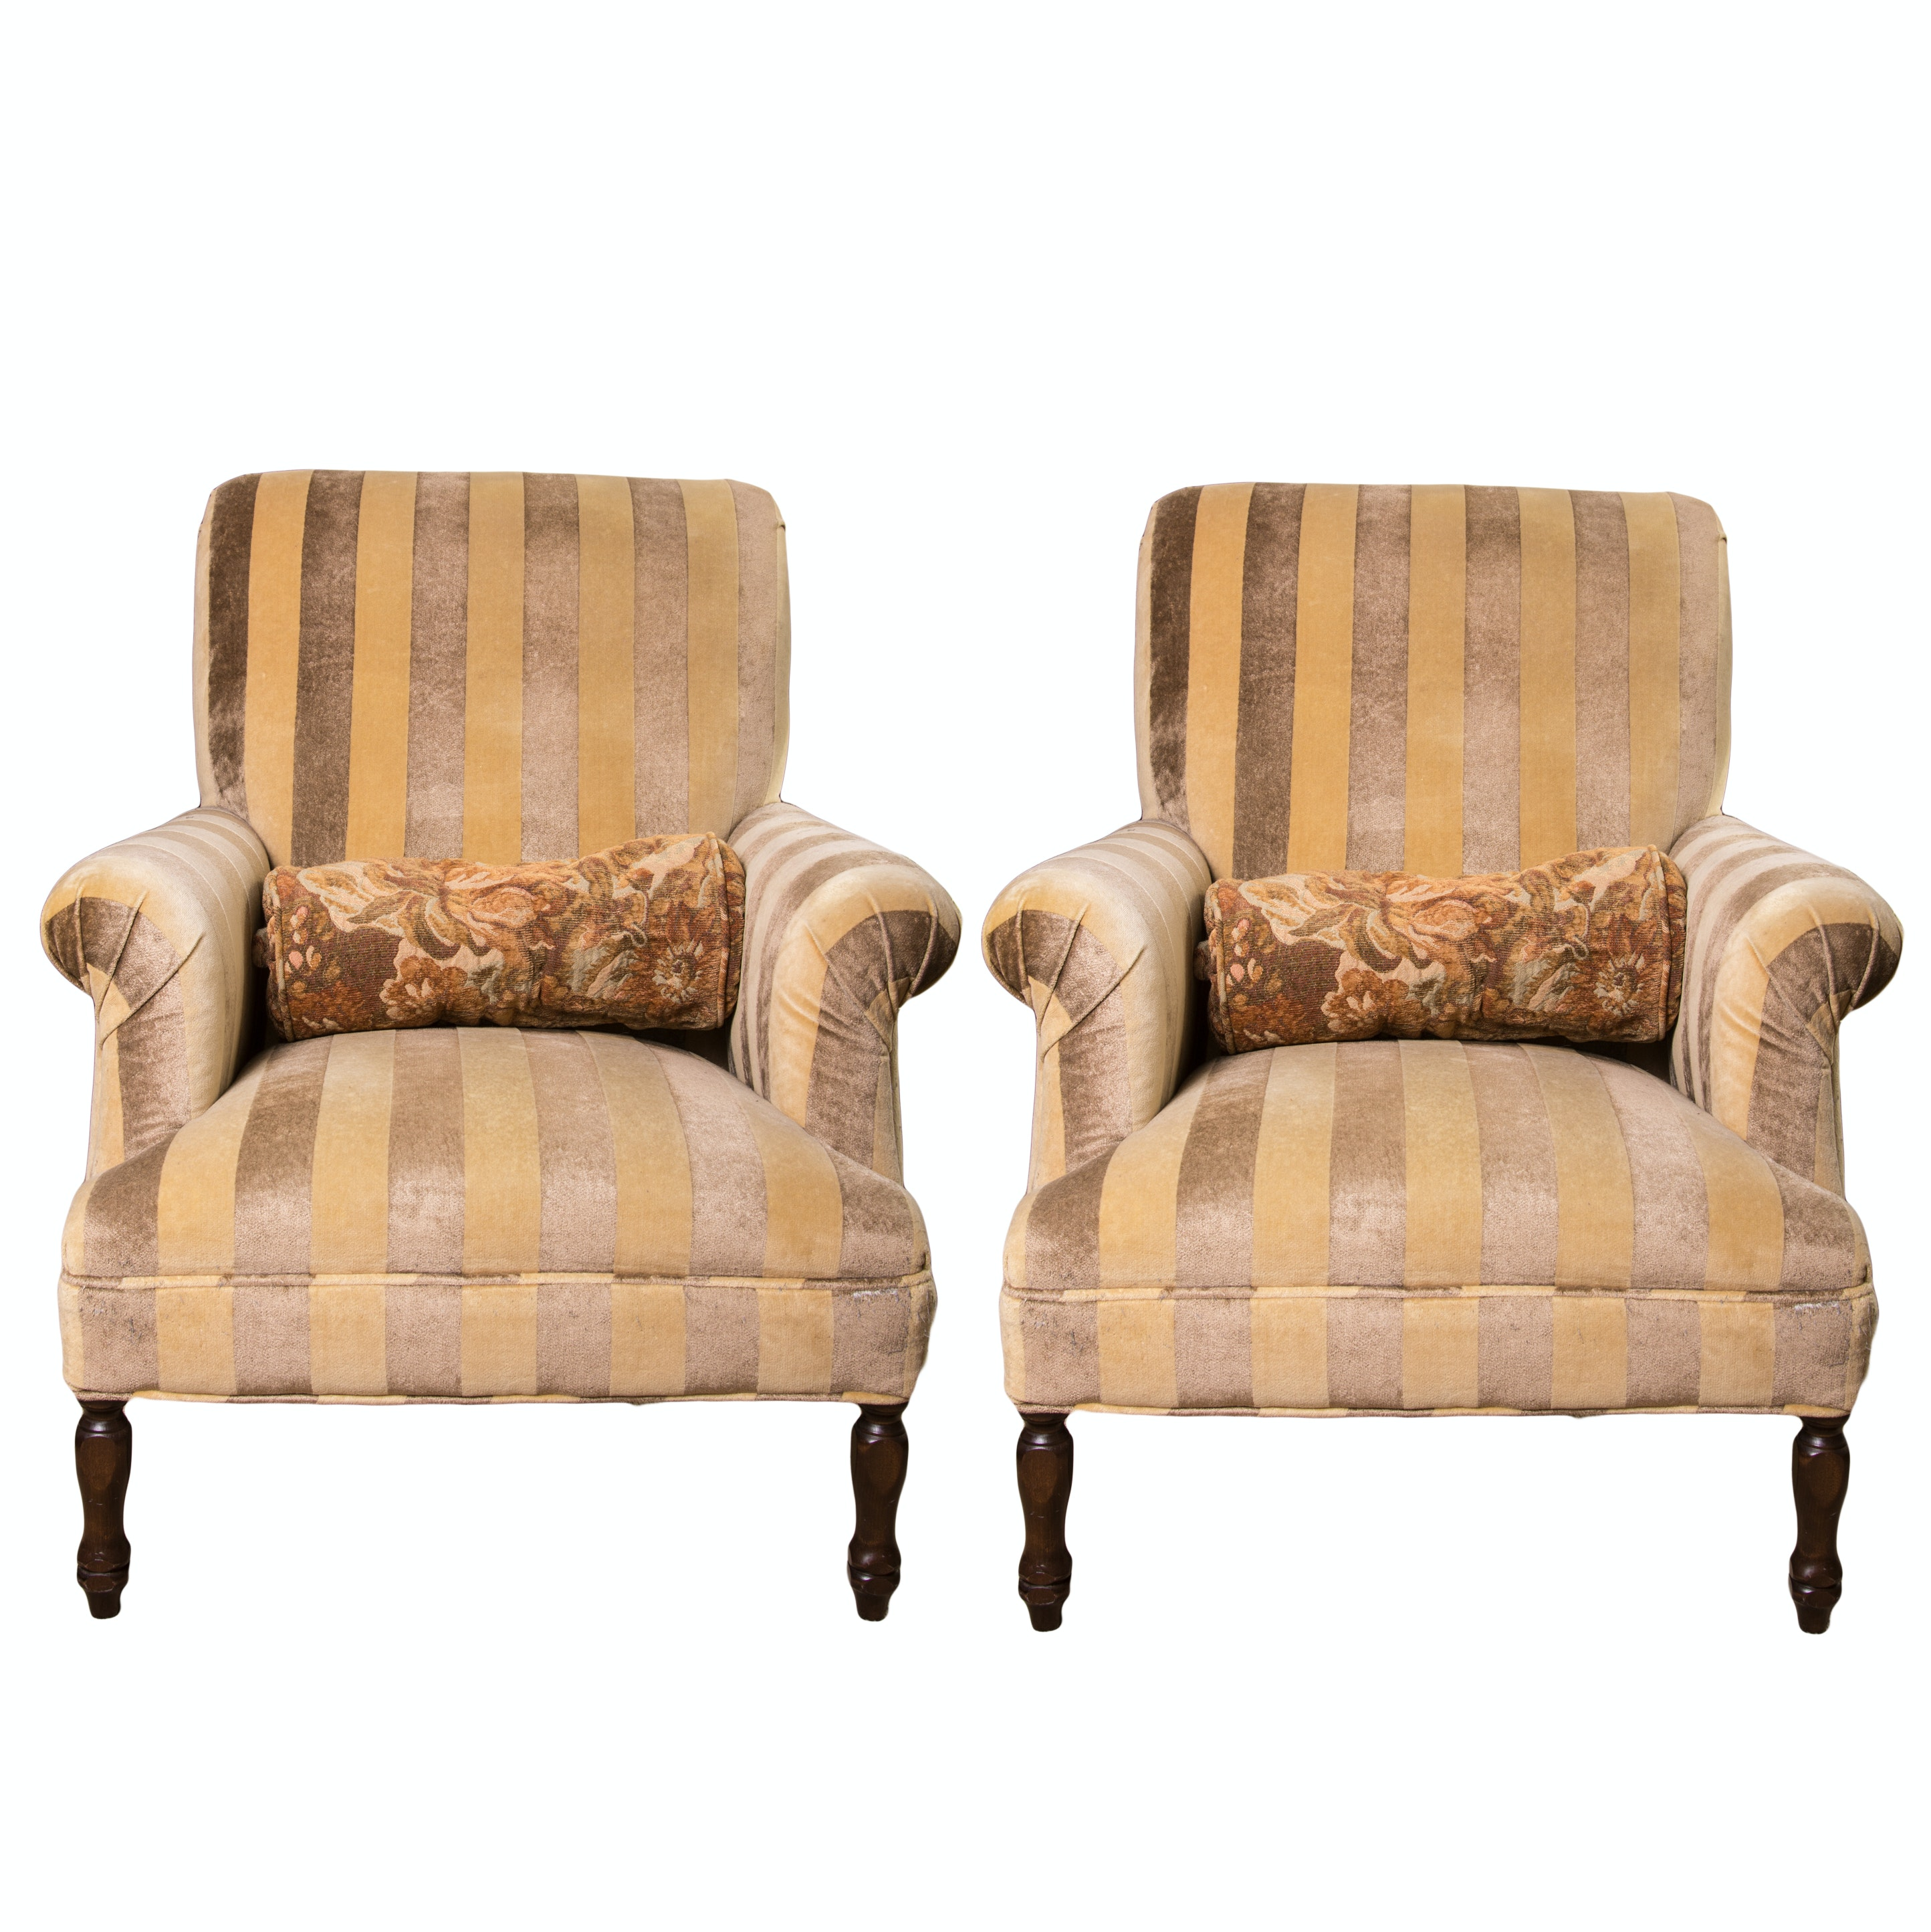 Pair of English Inspired Club Chairs